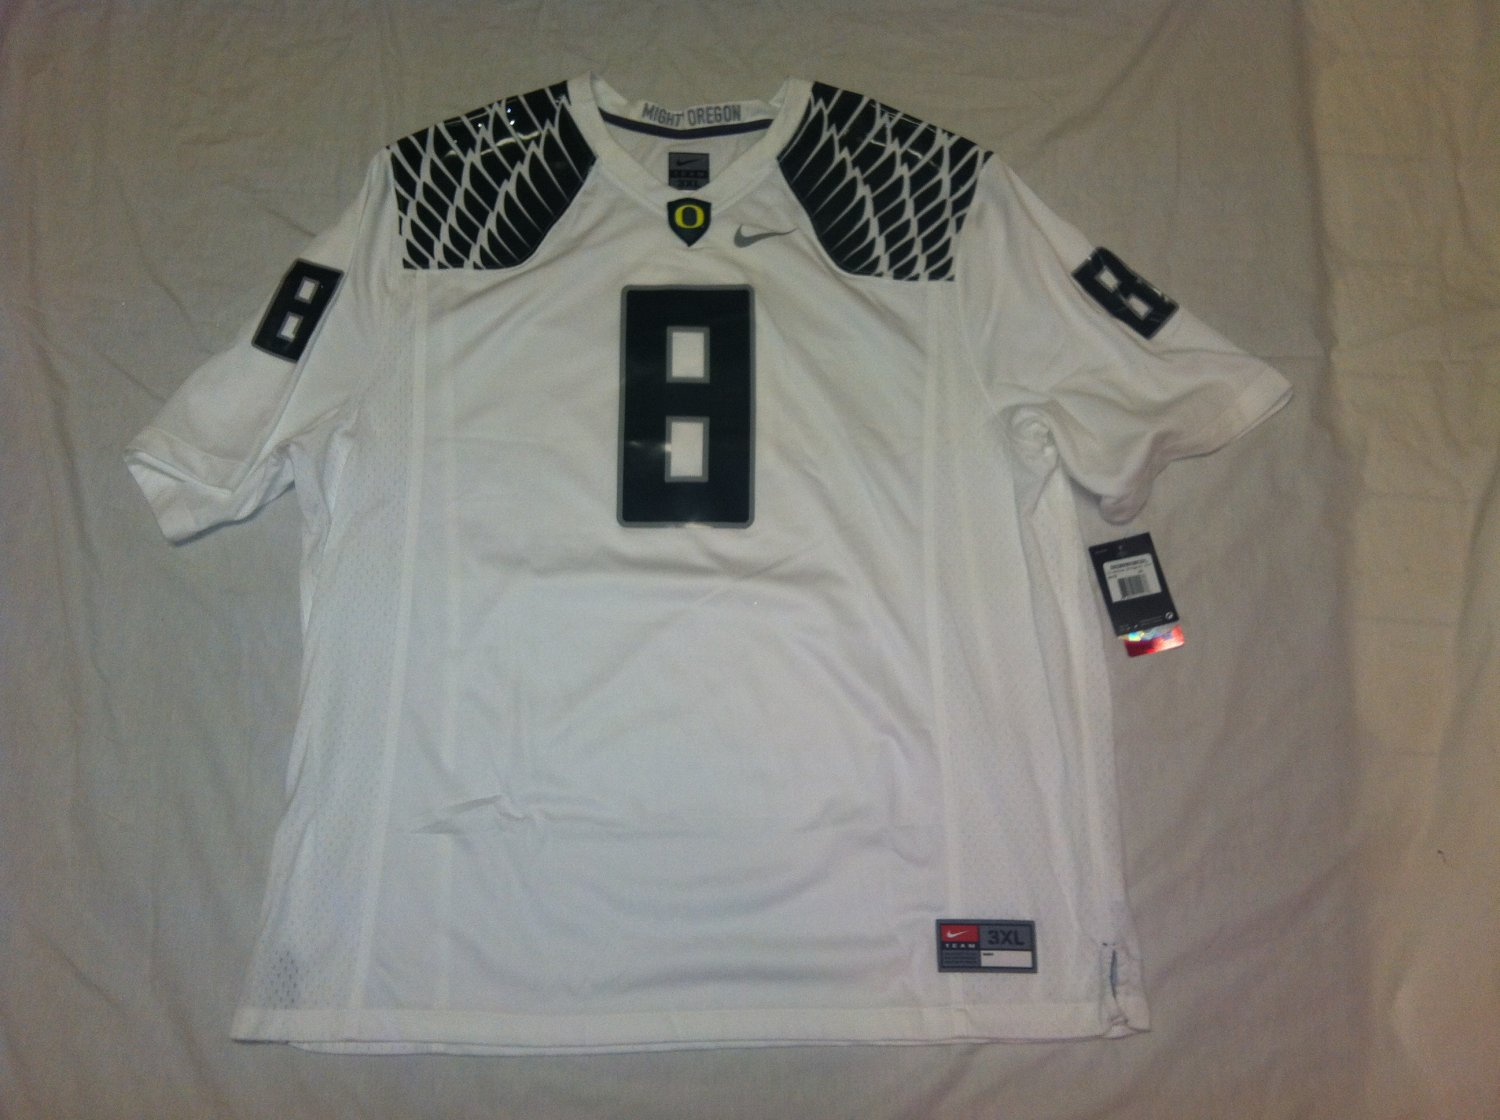 Oregon Ducks White 3XL #8 (Marcus Mariota) Nike Game Jersey